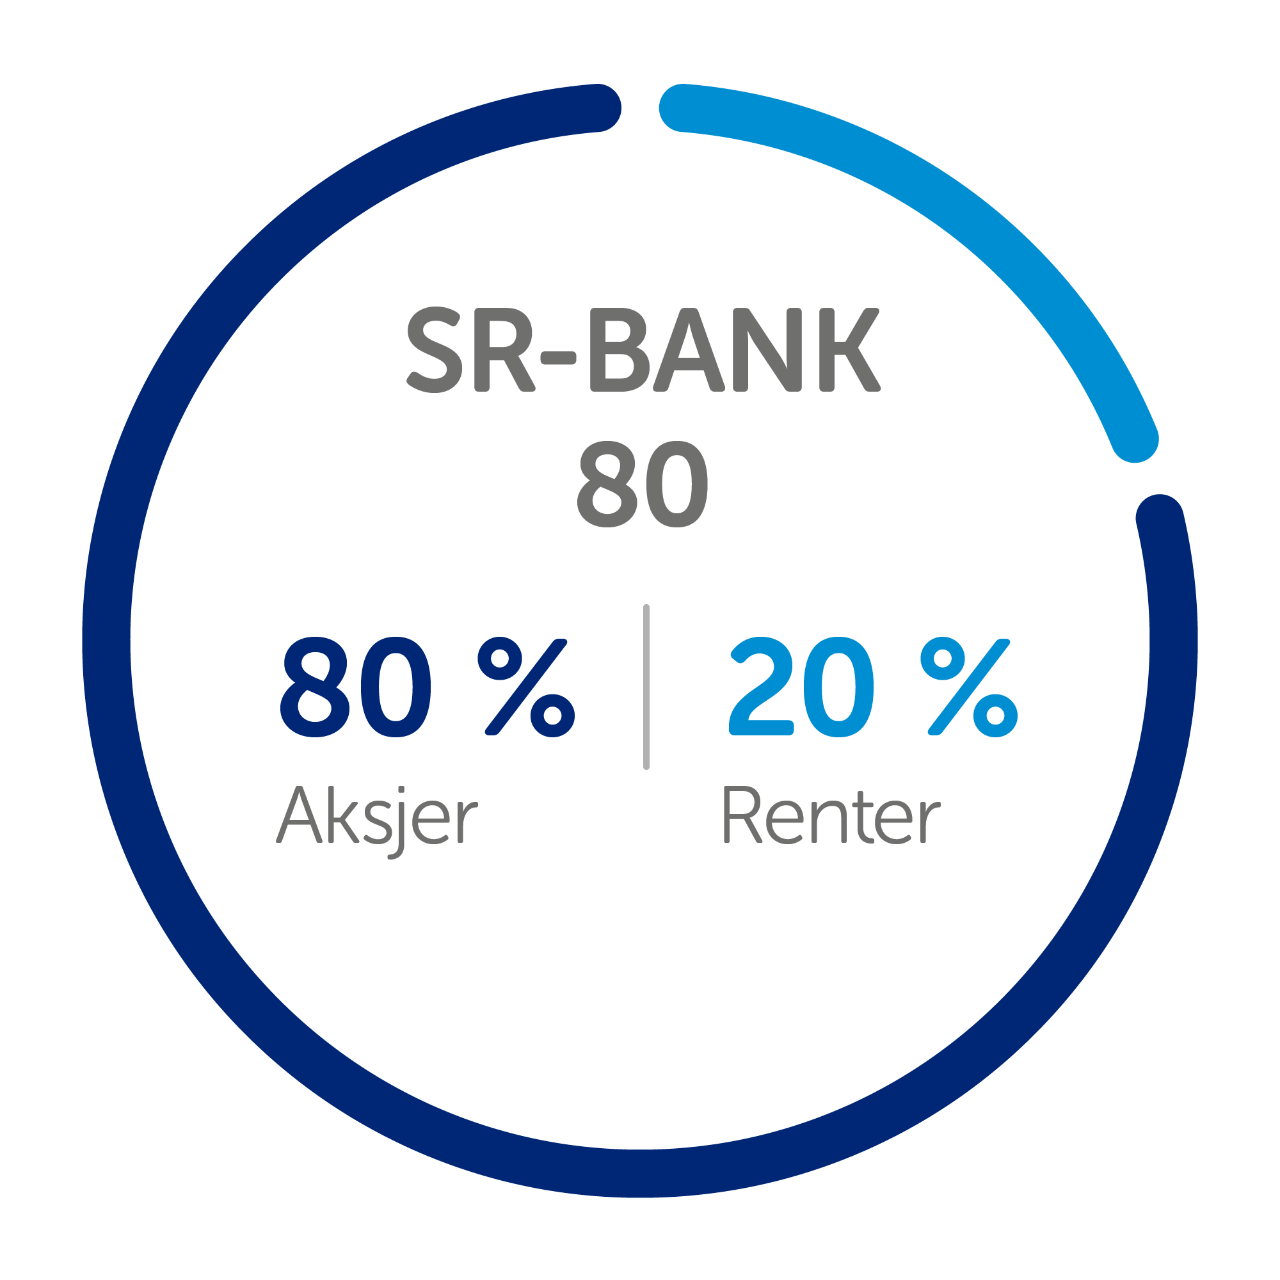 kakediagram fond sr-bank 80